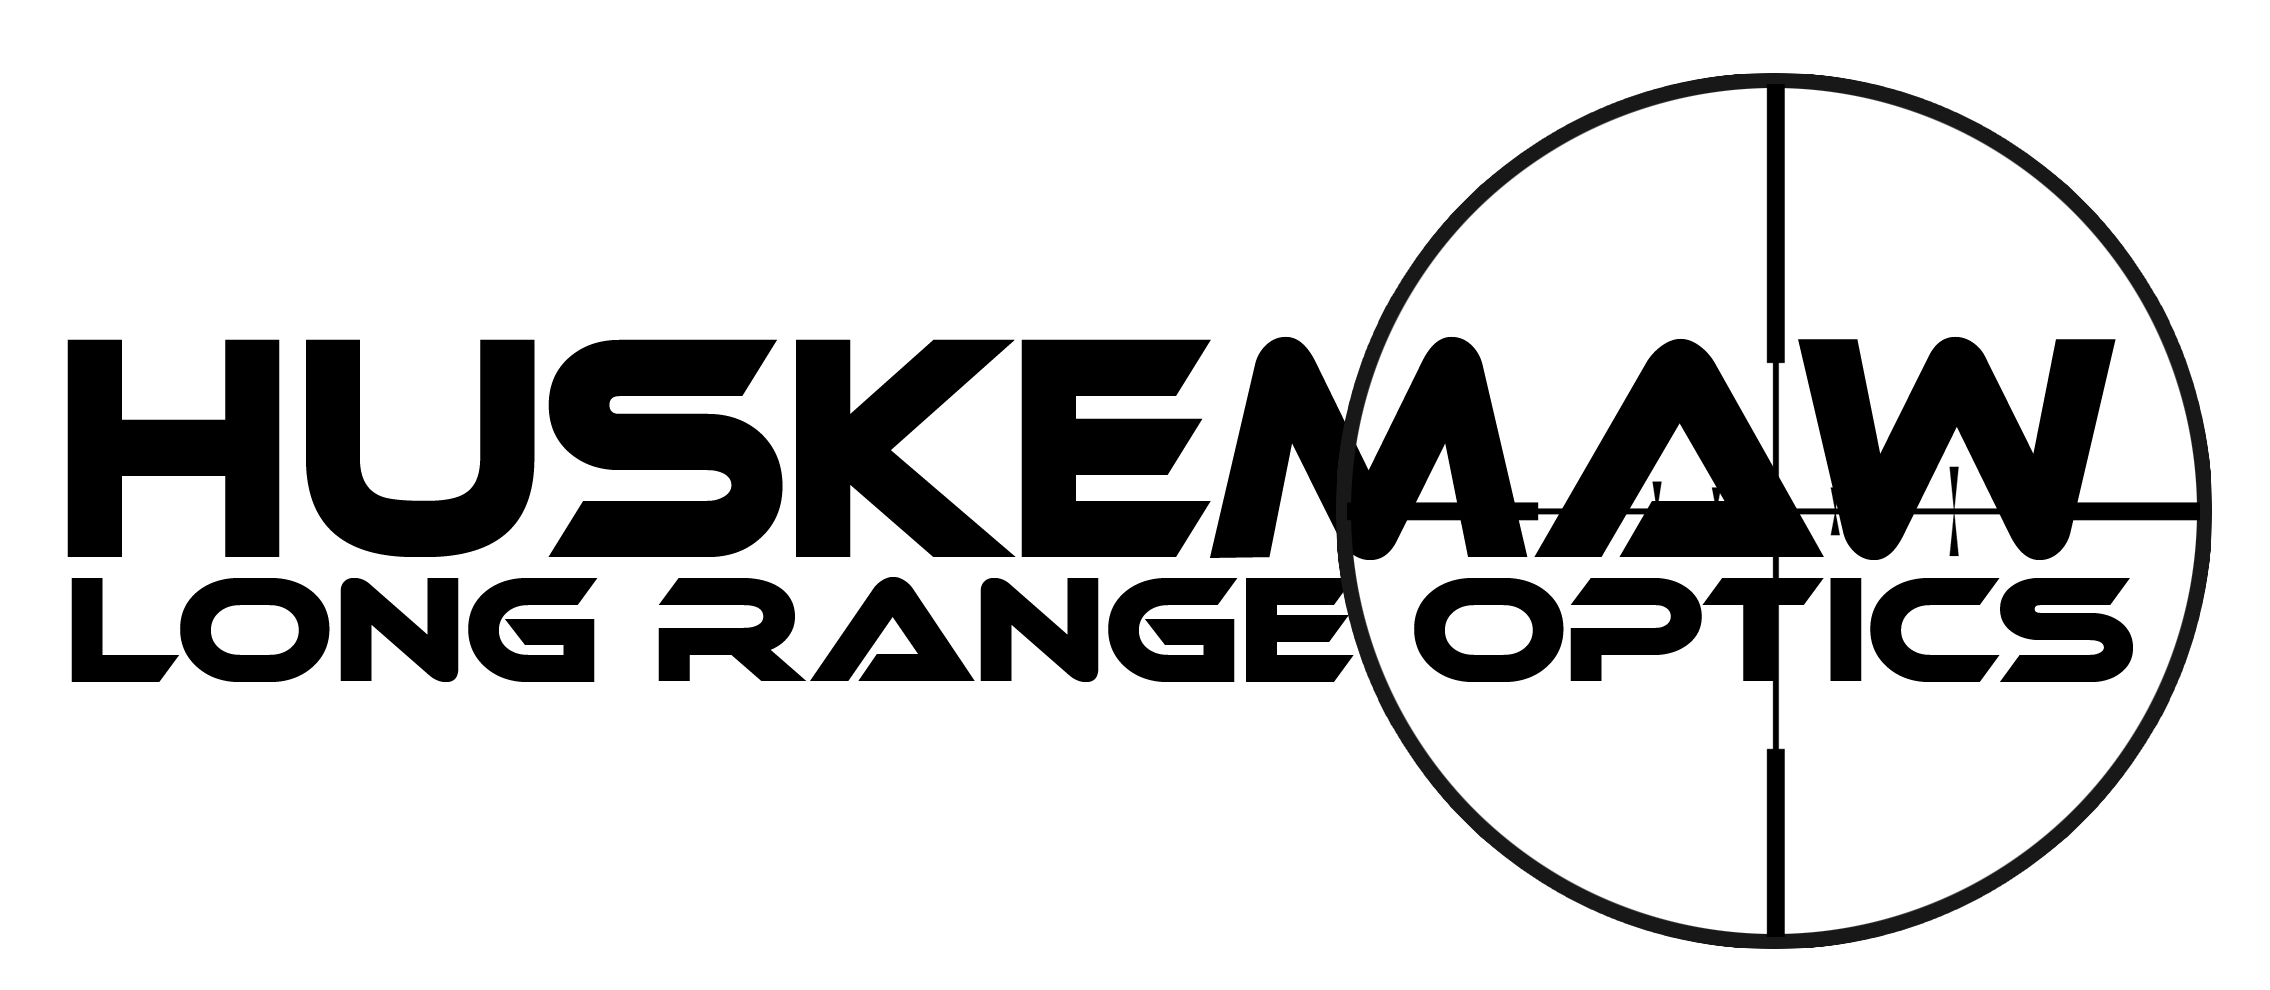 Gallery For > Rifle Scope Logo